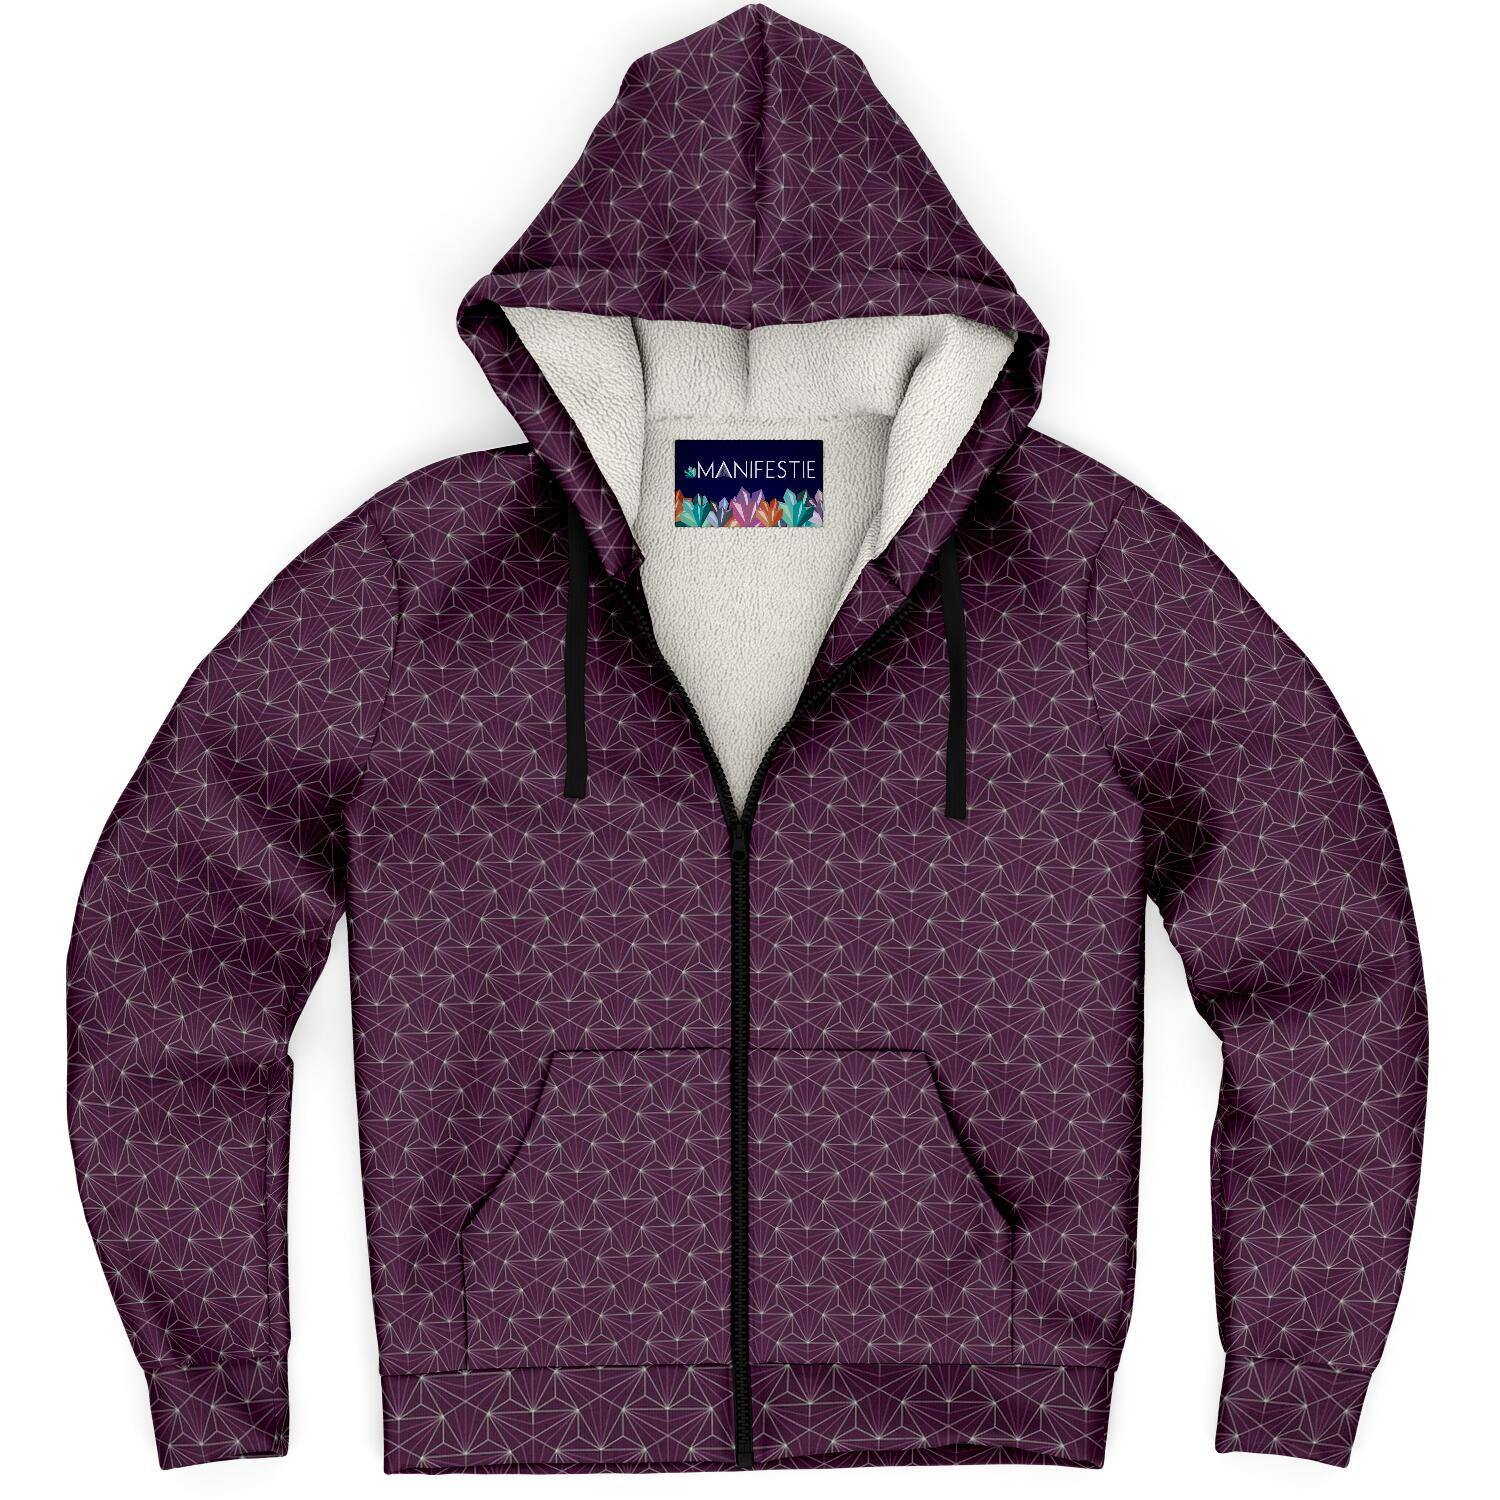 Ruby Sacred Connections Premium Sherpa Lined Zip Hoodie